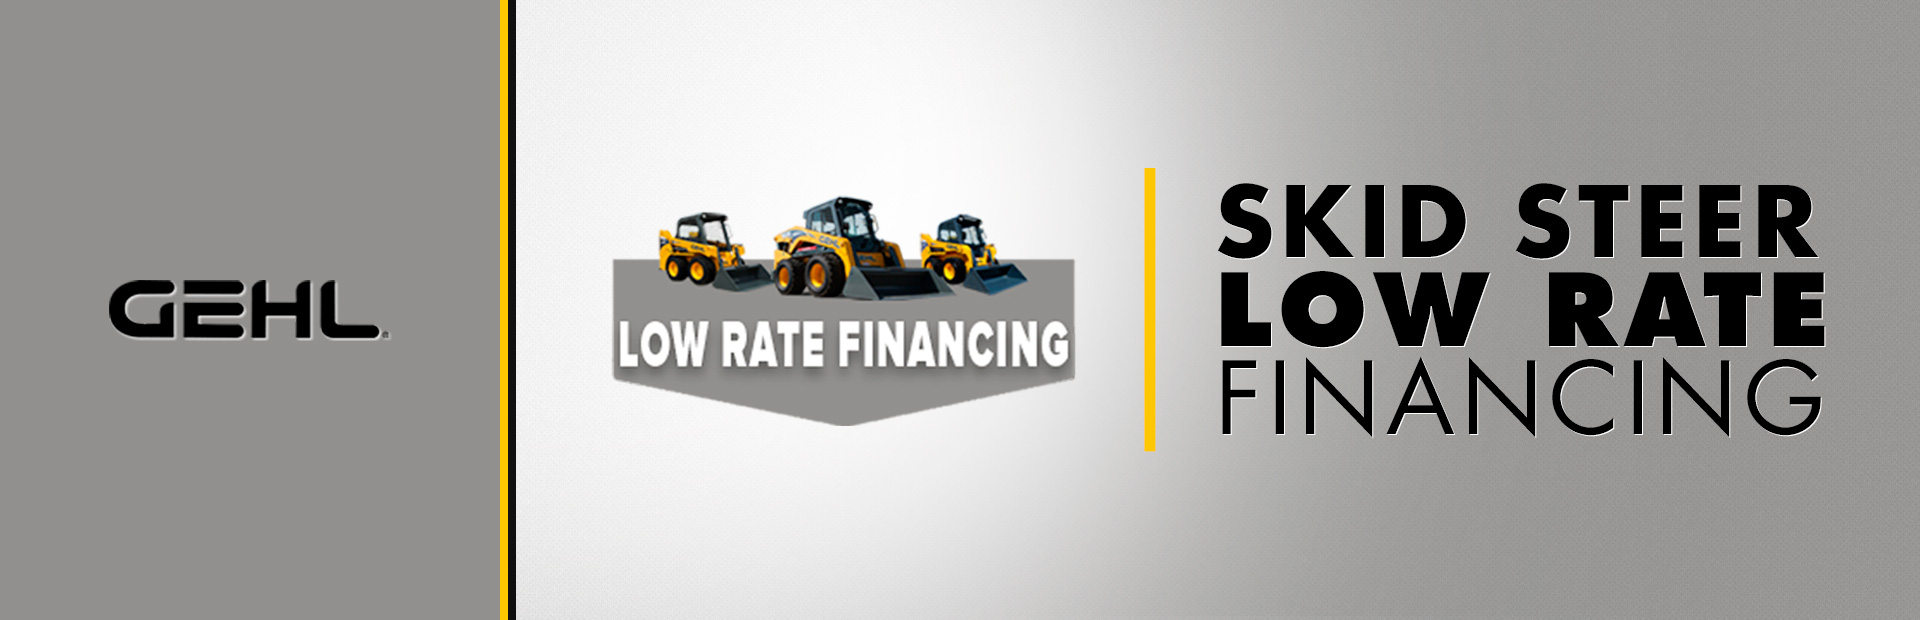 Gehl: Skid Loader - Low Rate Financing